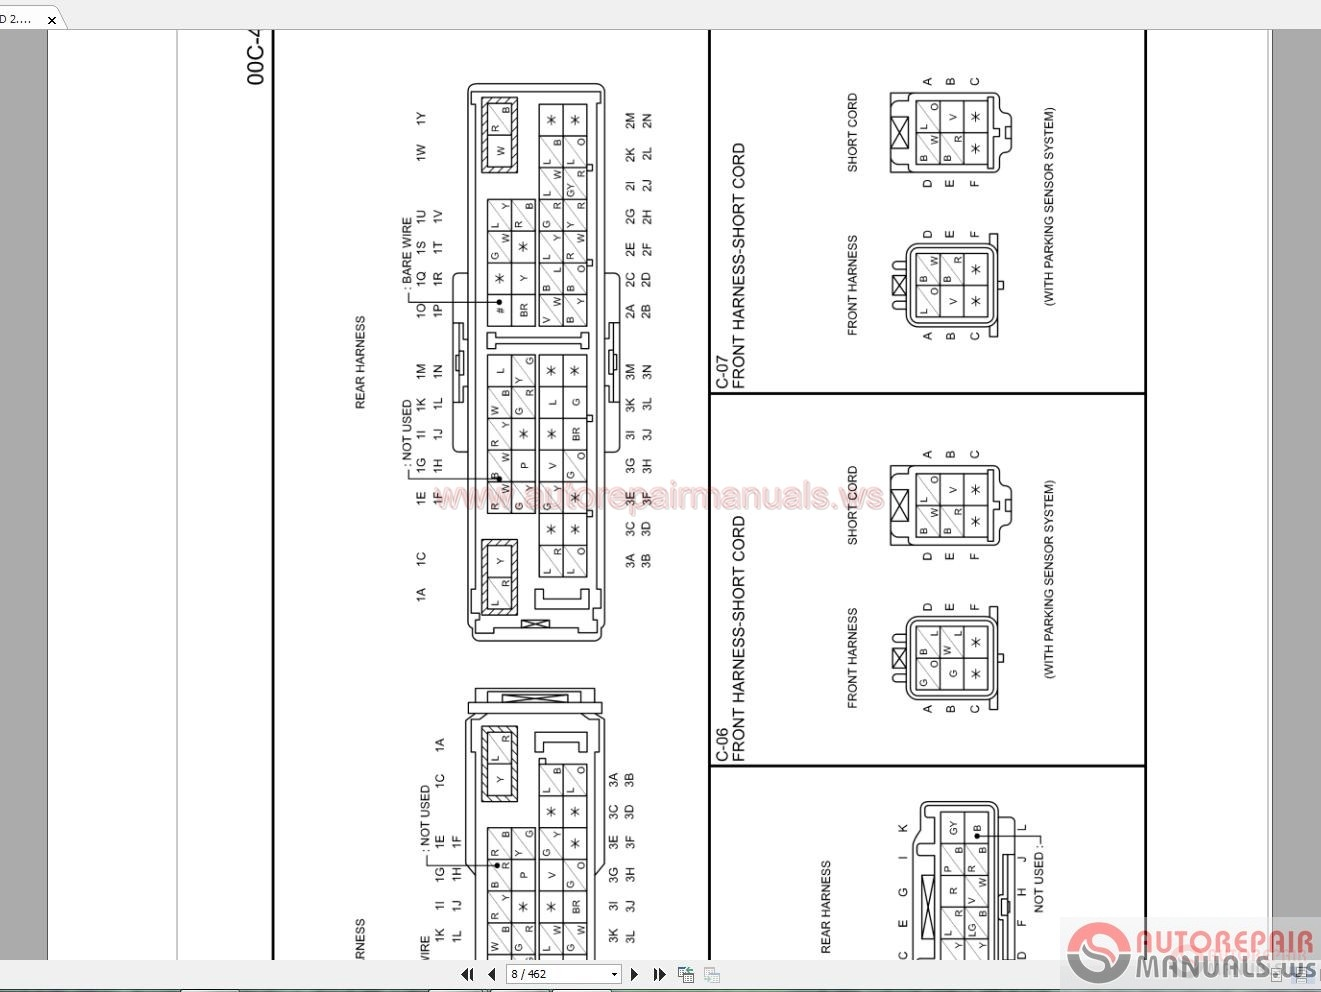 mazda cx 5 wiring diagram 2015 mazda cx 5 wiring diagram